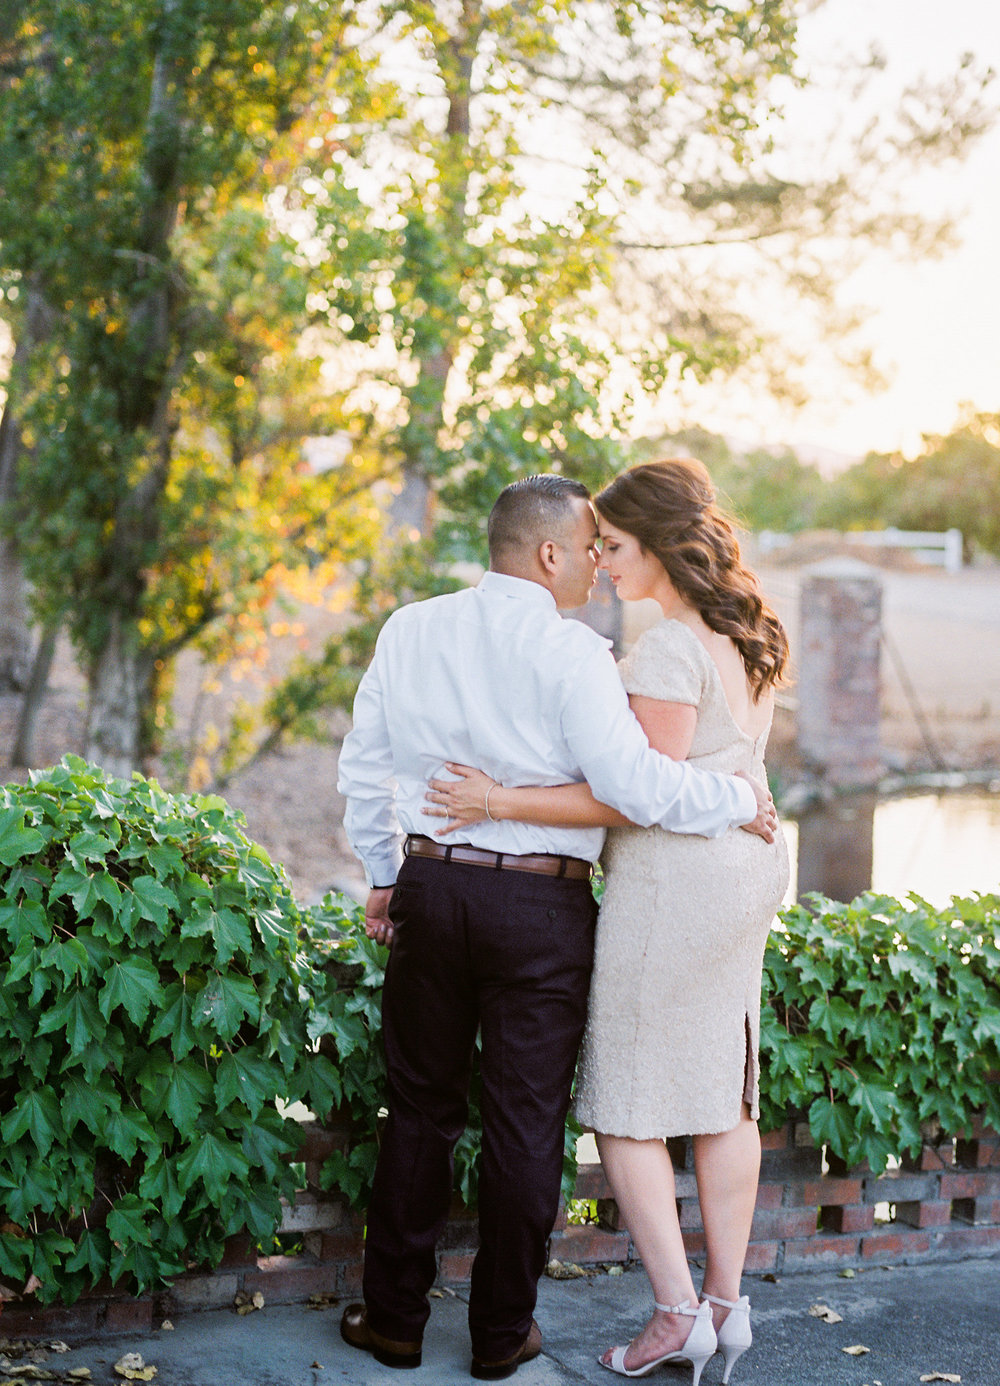 film photographer, engagement session, Southern California wedding photographer